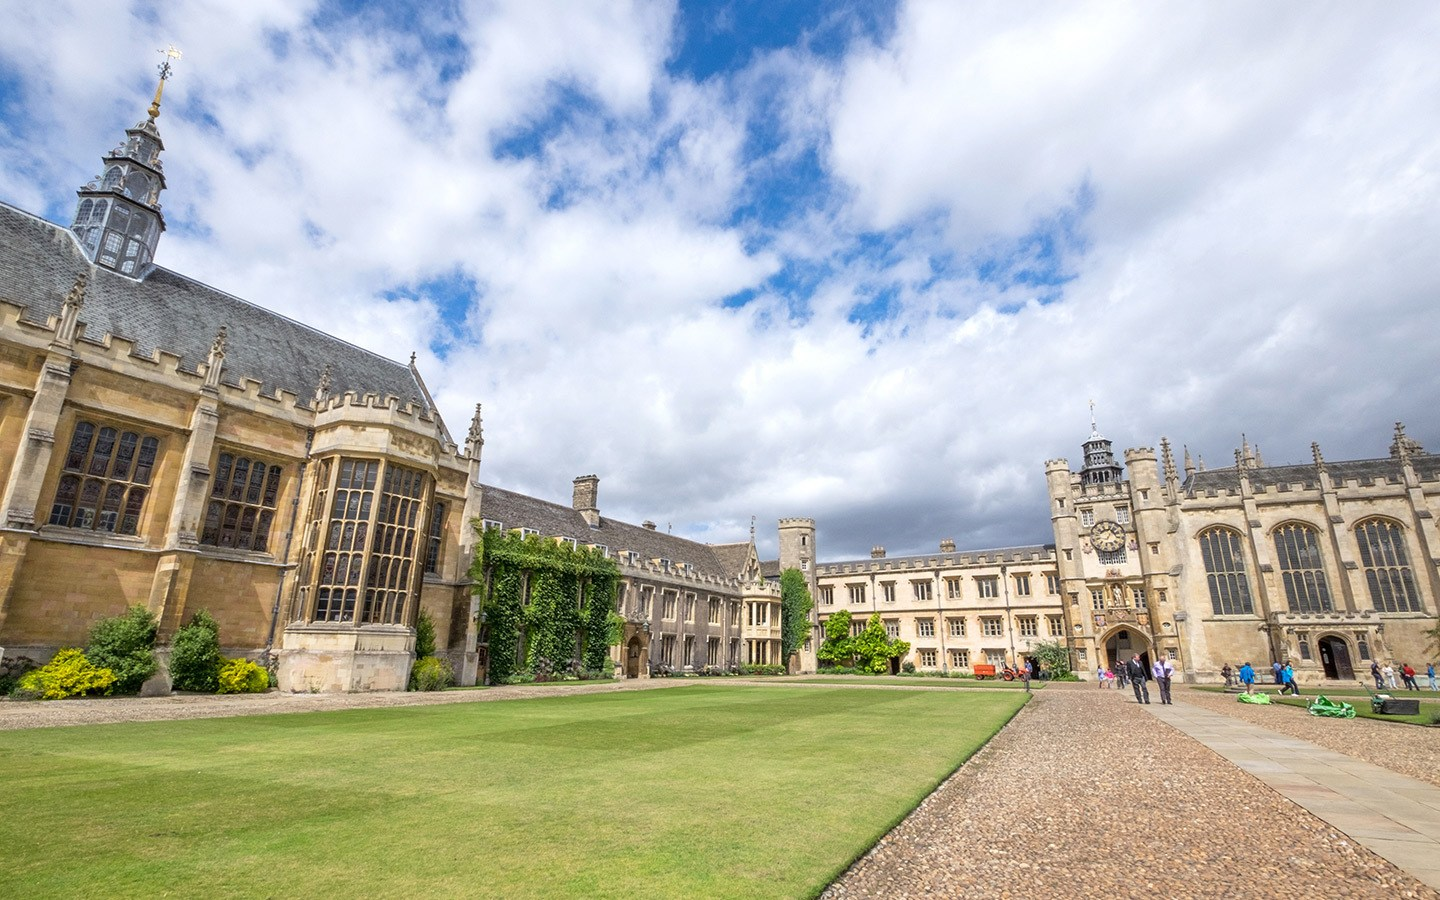 Inside the quads of Trinity College, Cambridge University